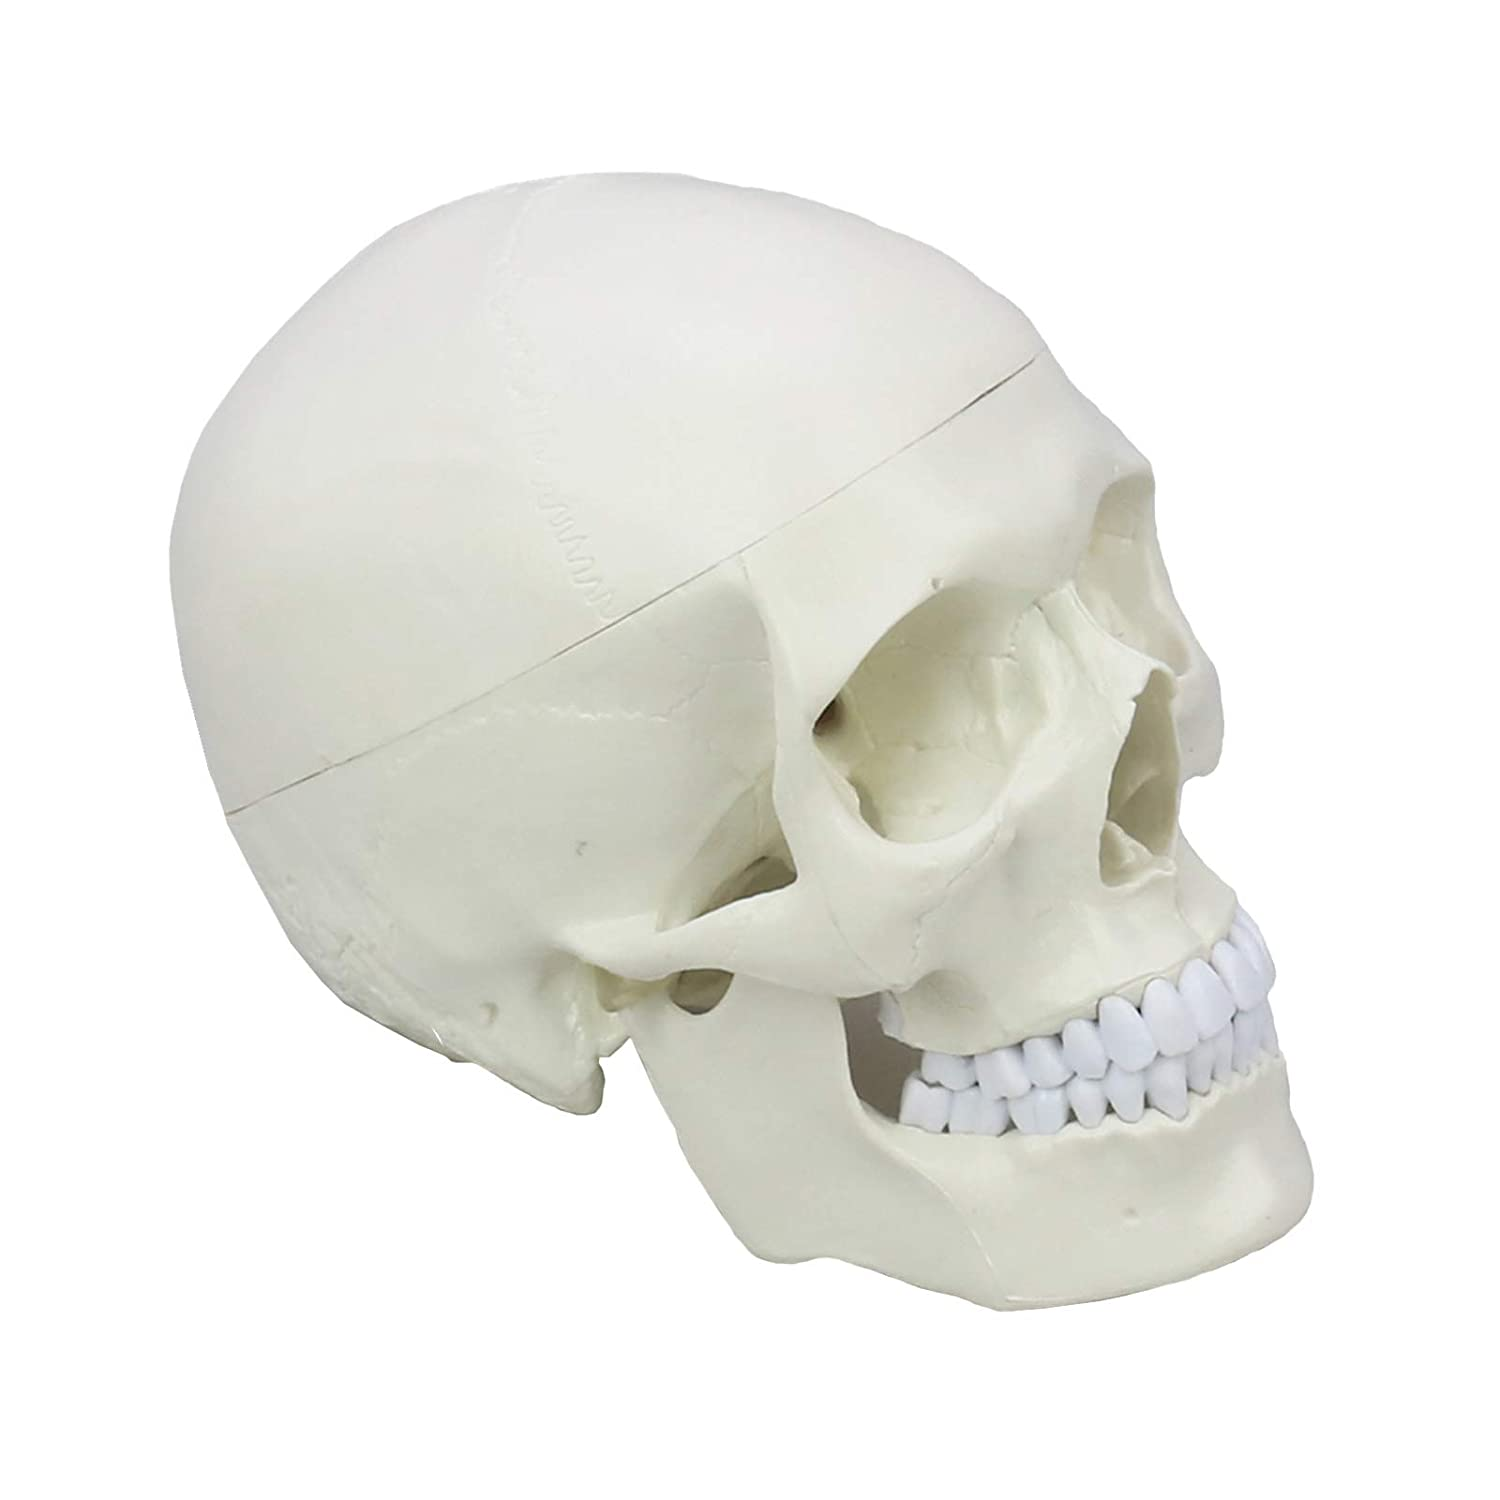 Medical Anatomical Human Skull Model,Medical Quality, Life Size,3 Part,Removable Skull Cap,Shows Most Major Foramen, Fossa, and Canals,Includes Full Set of Teeth Pomcat